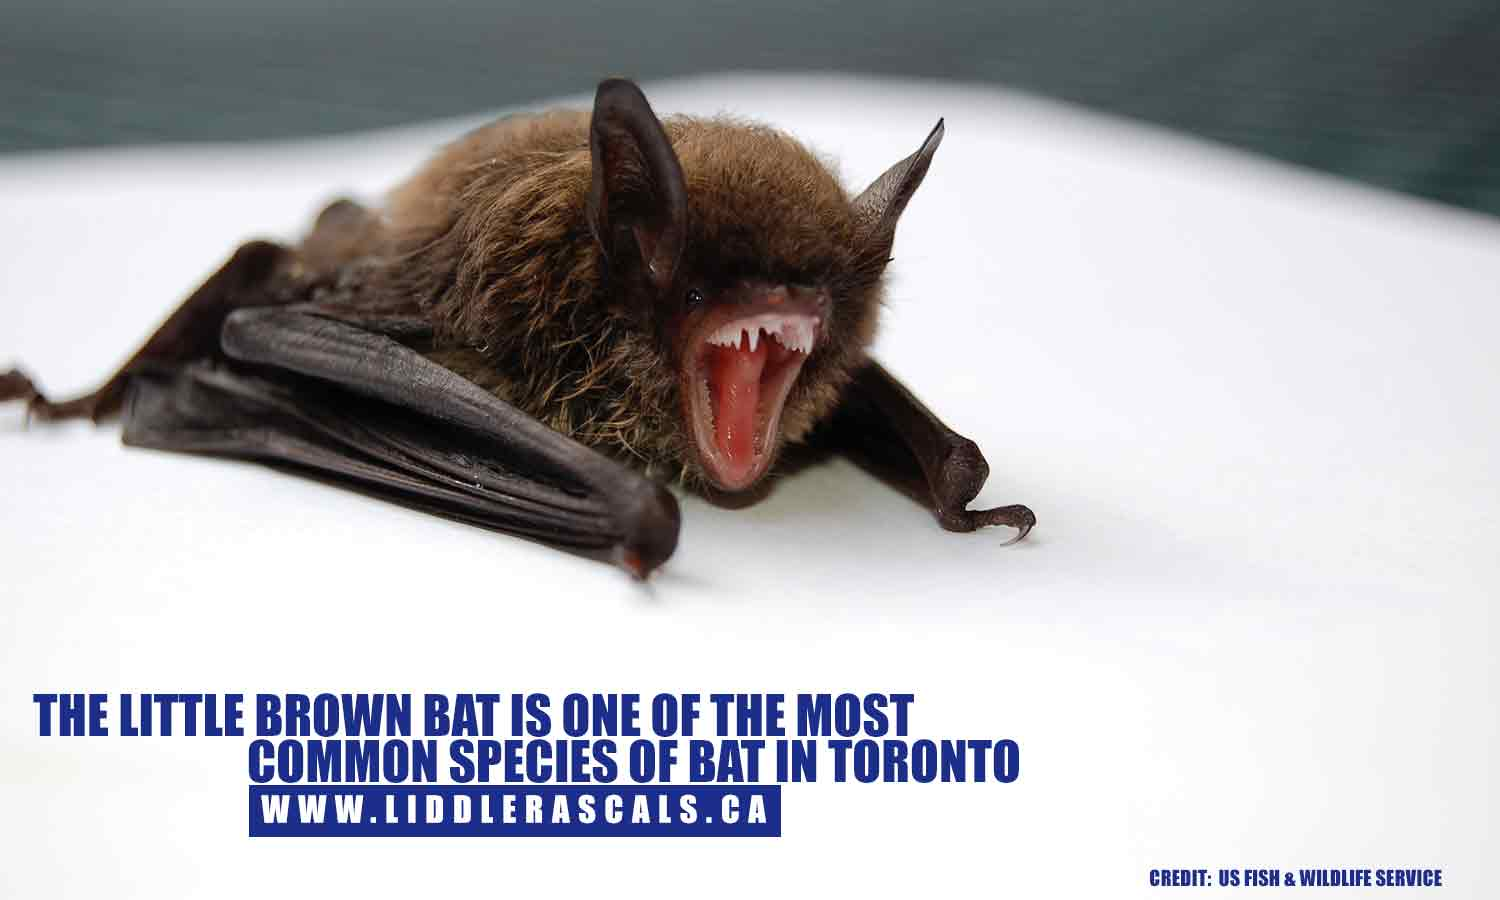 The little brown bat is one of the most common species of bat in Toronto